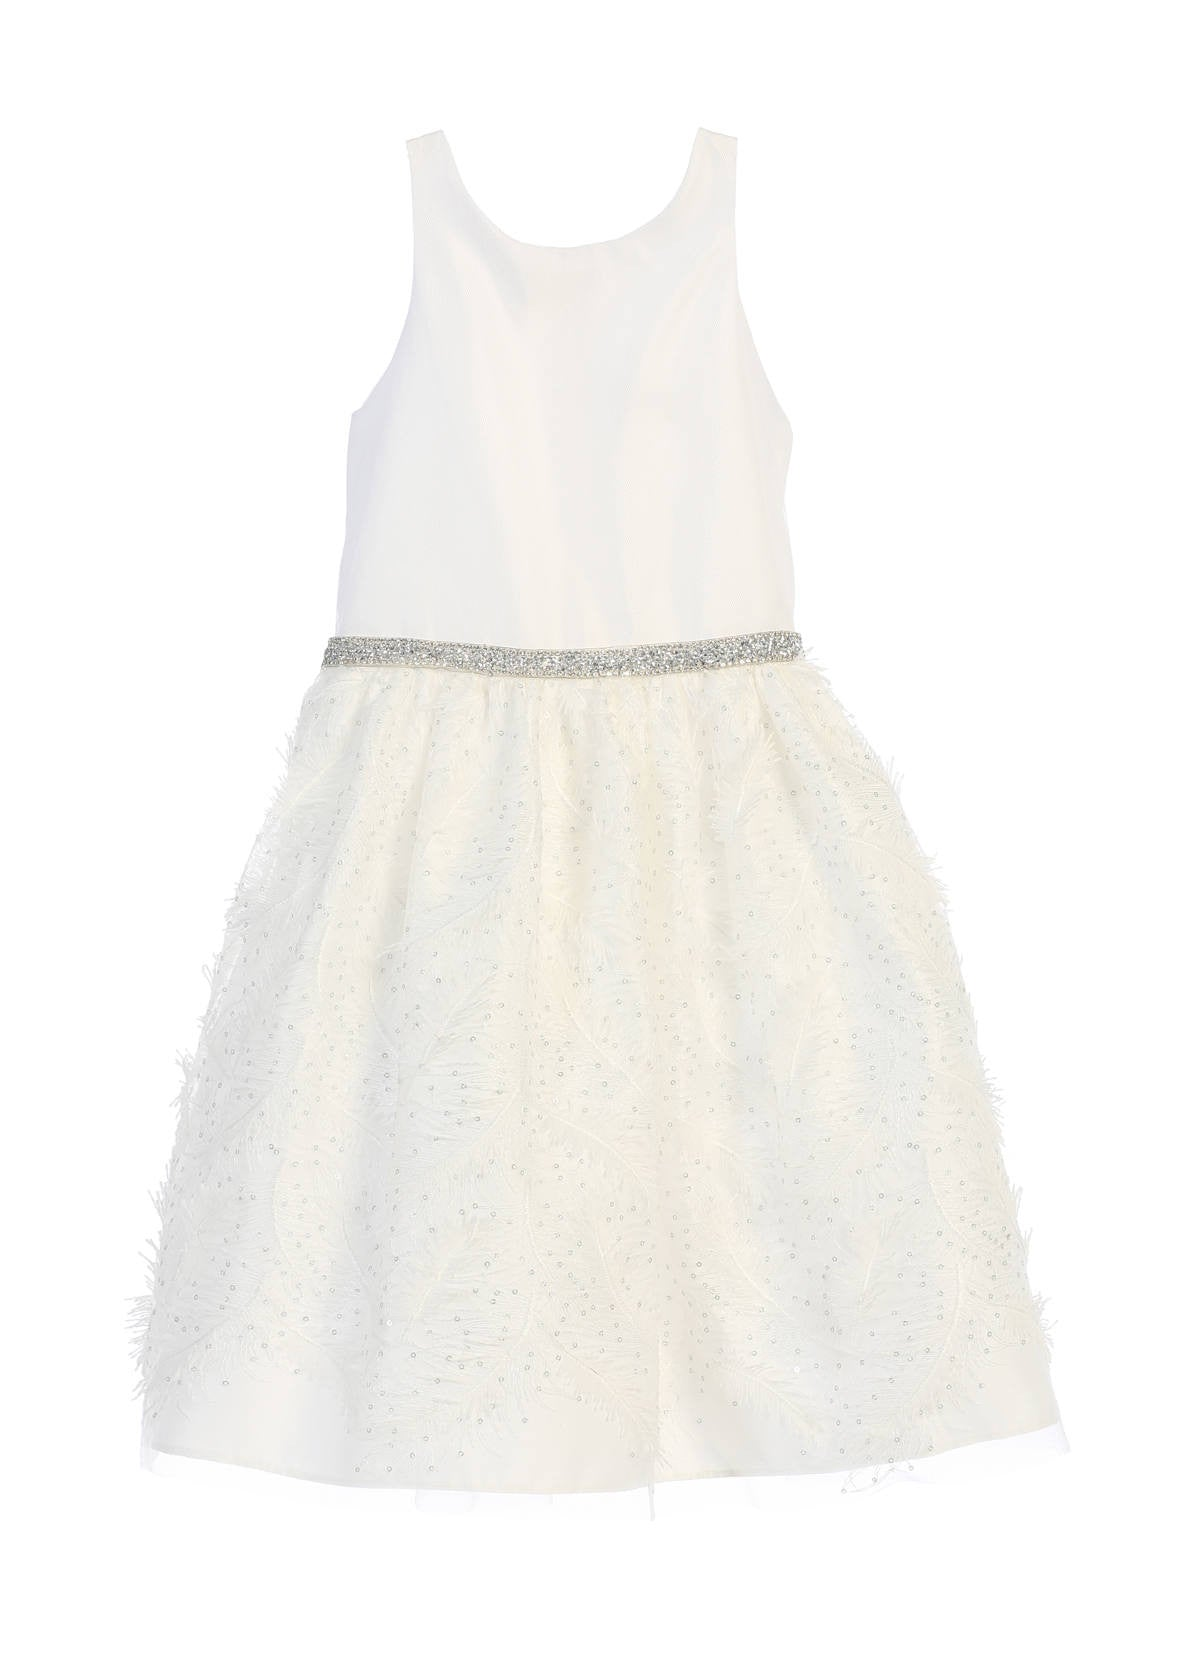 Sweet Kids Feather Patch Mesh Cocktail Dress - Off White, SK691